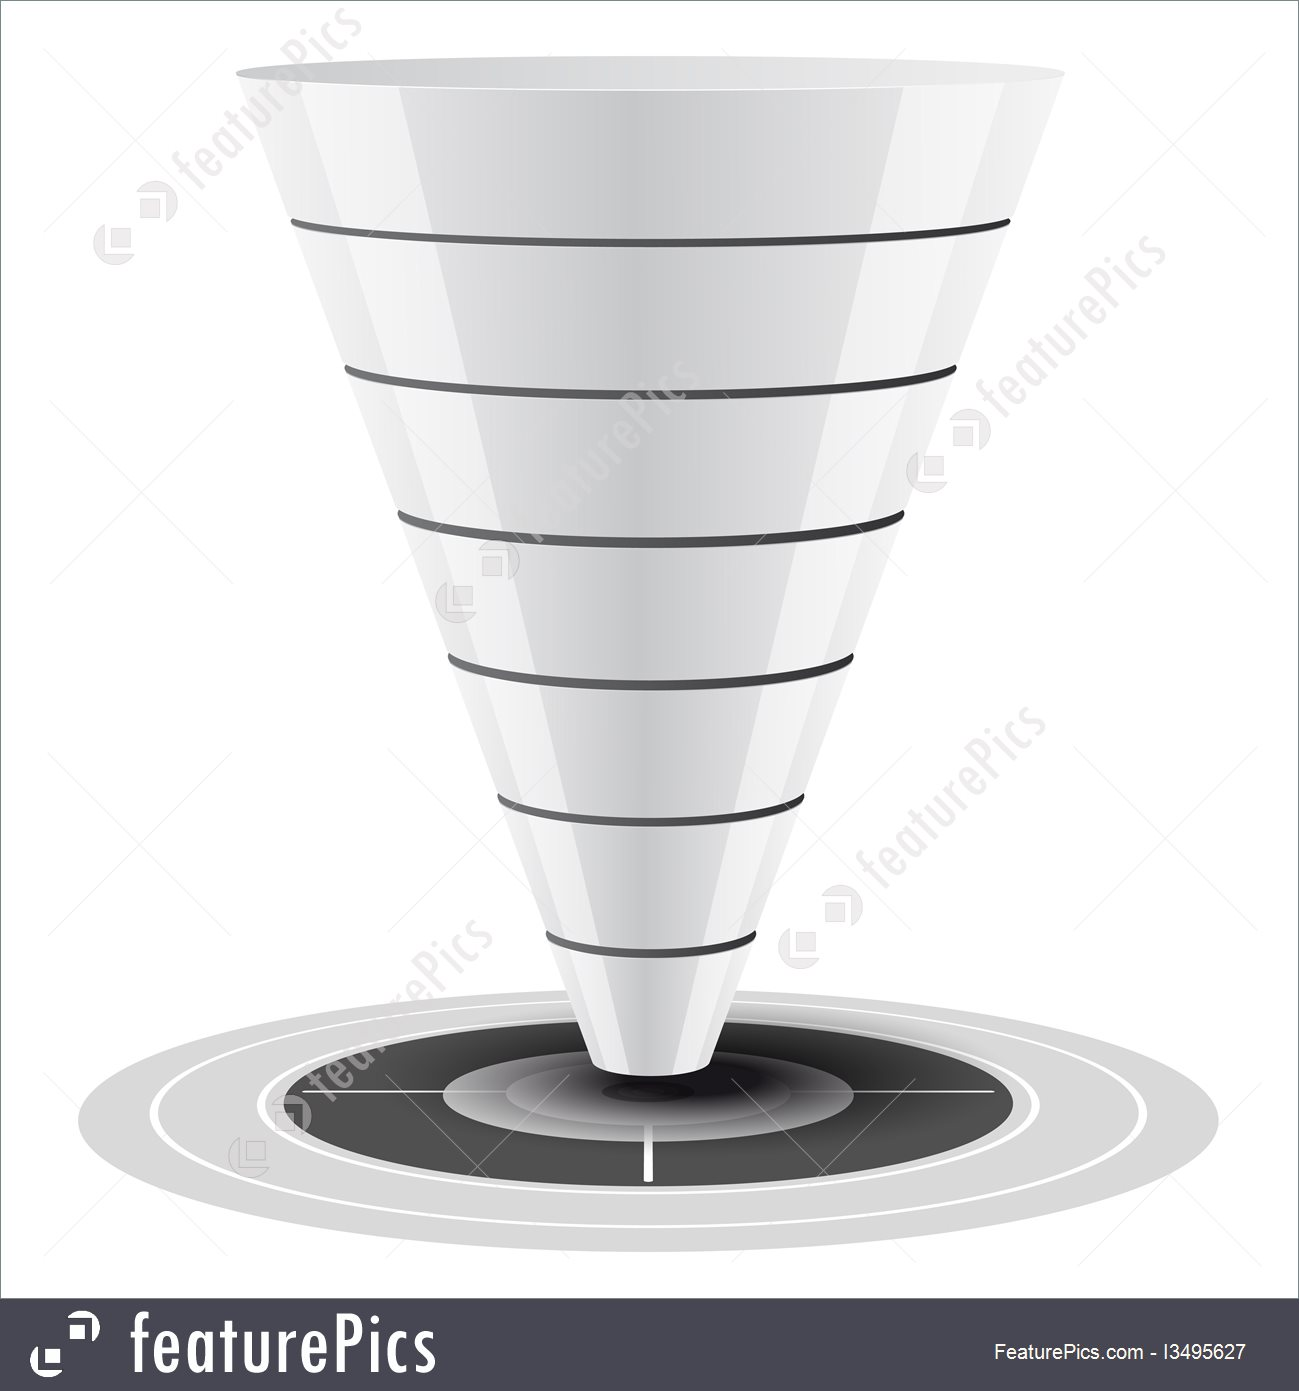 1299x1391 Sales Or Conversion Funnel, Vector Graphics